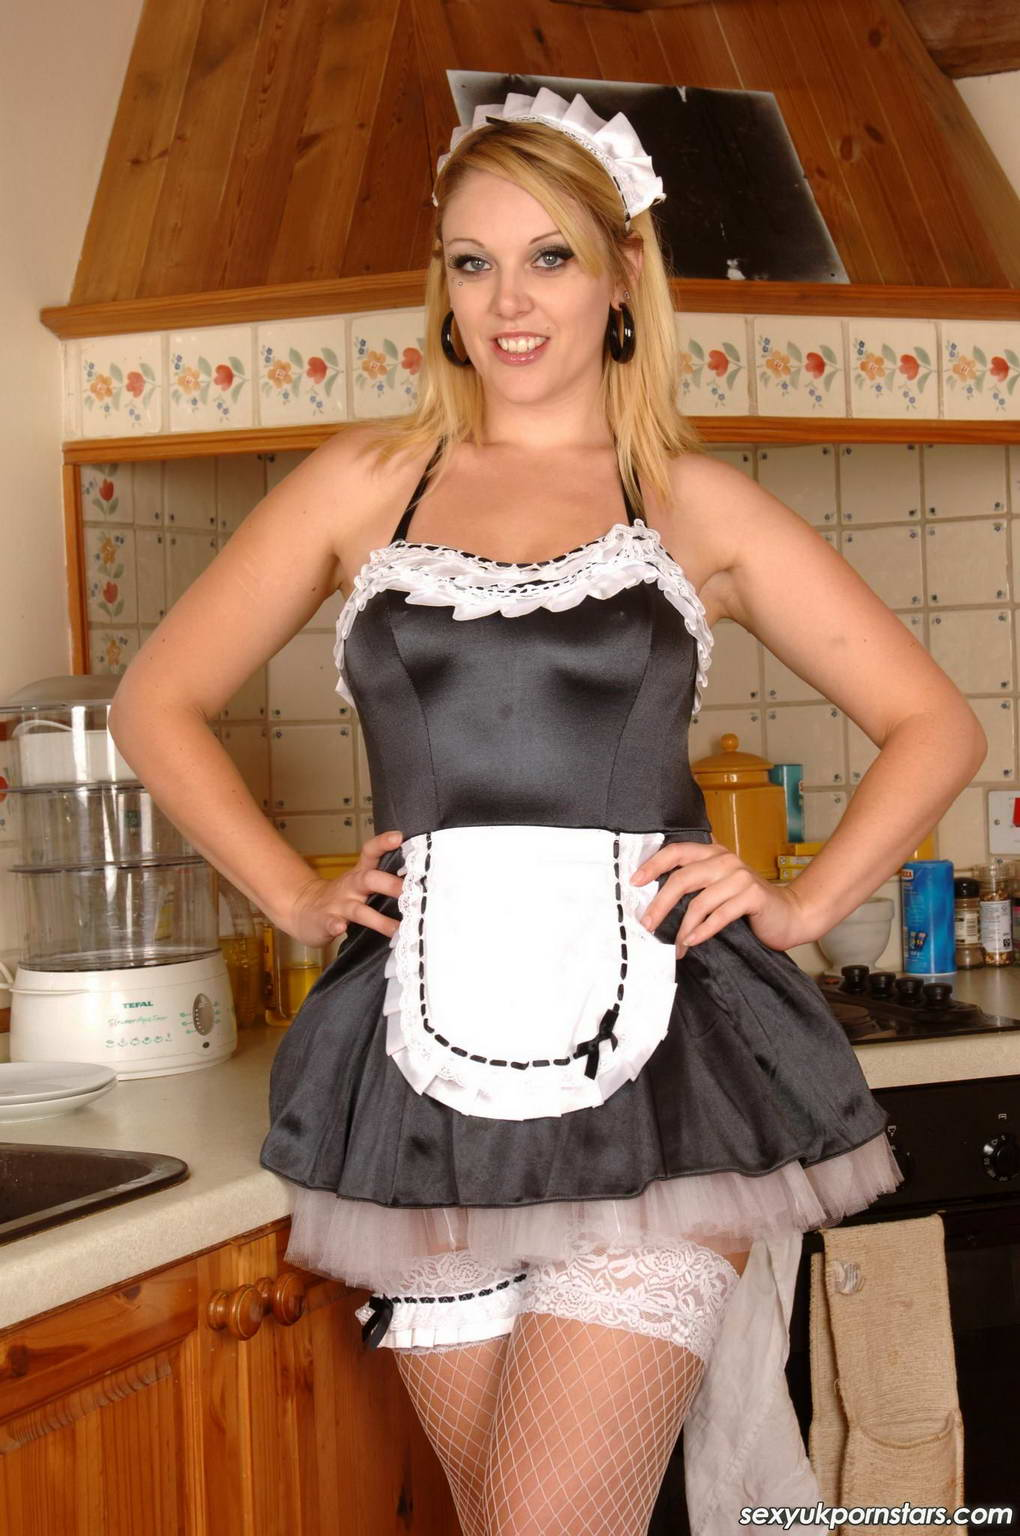 Porn stars in french maid